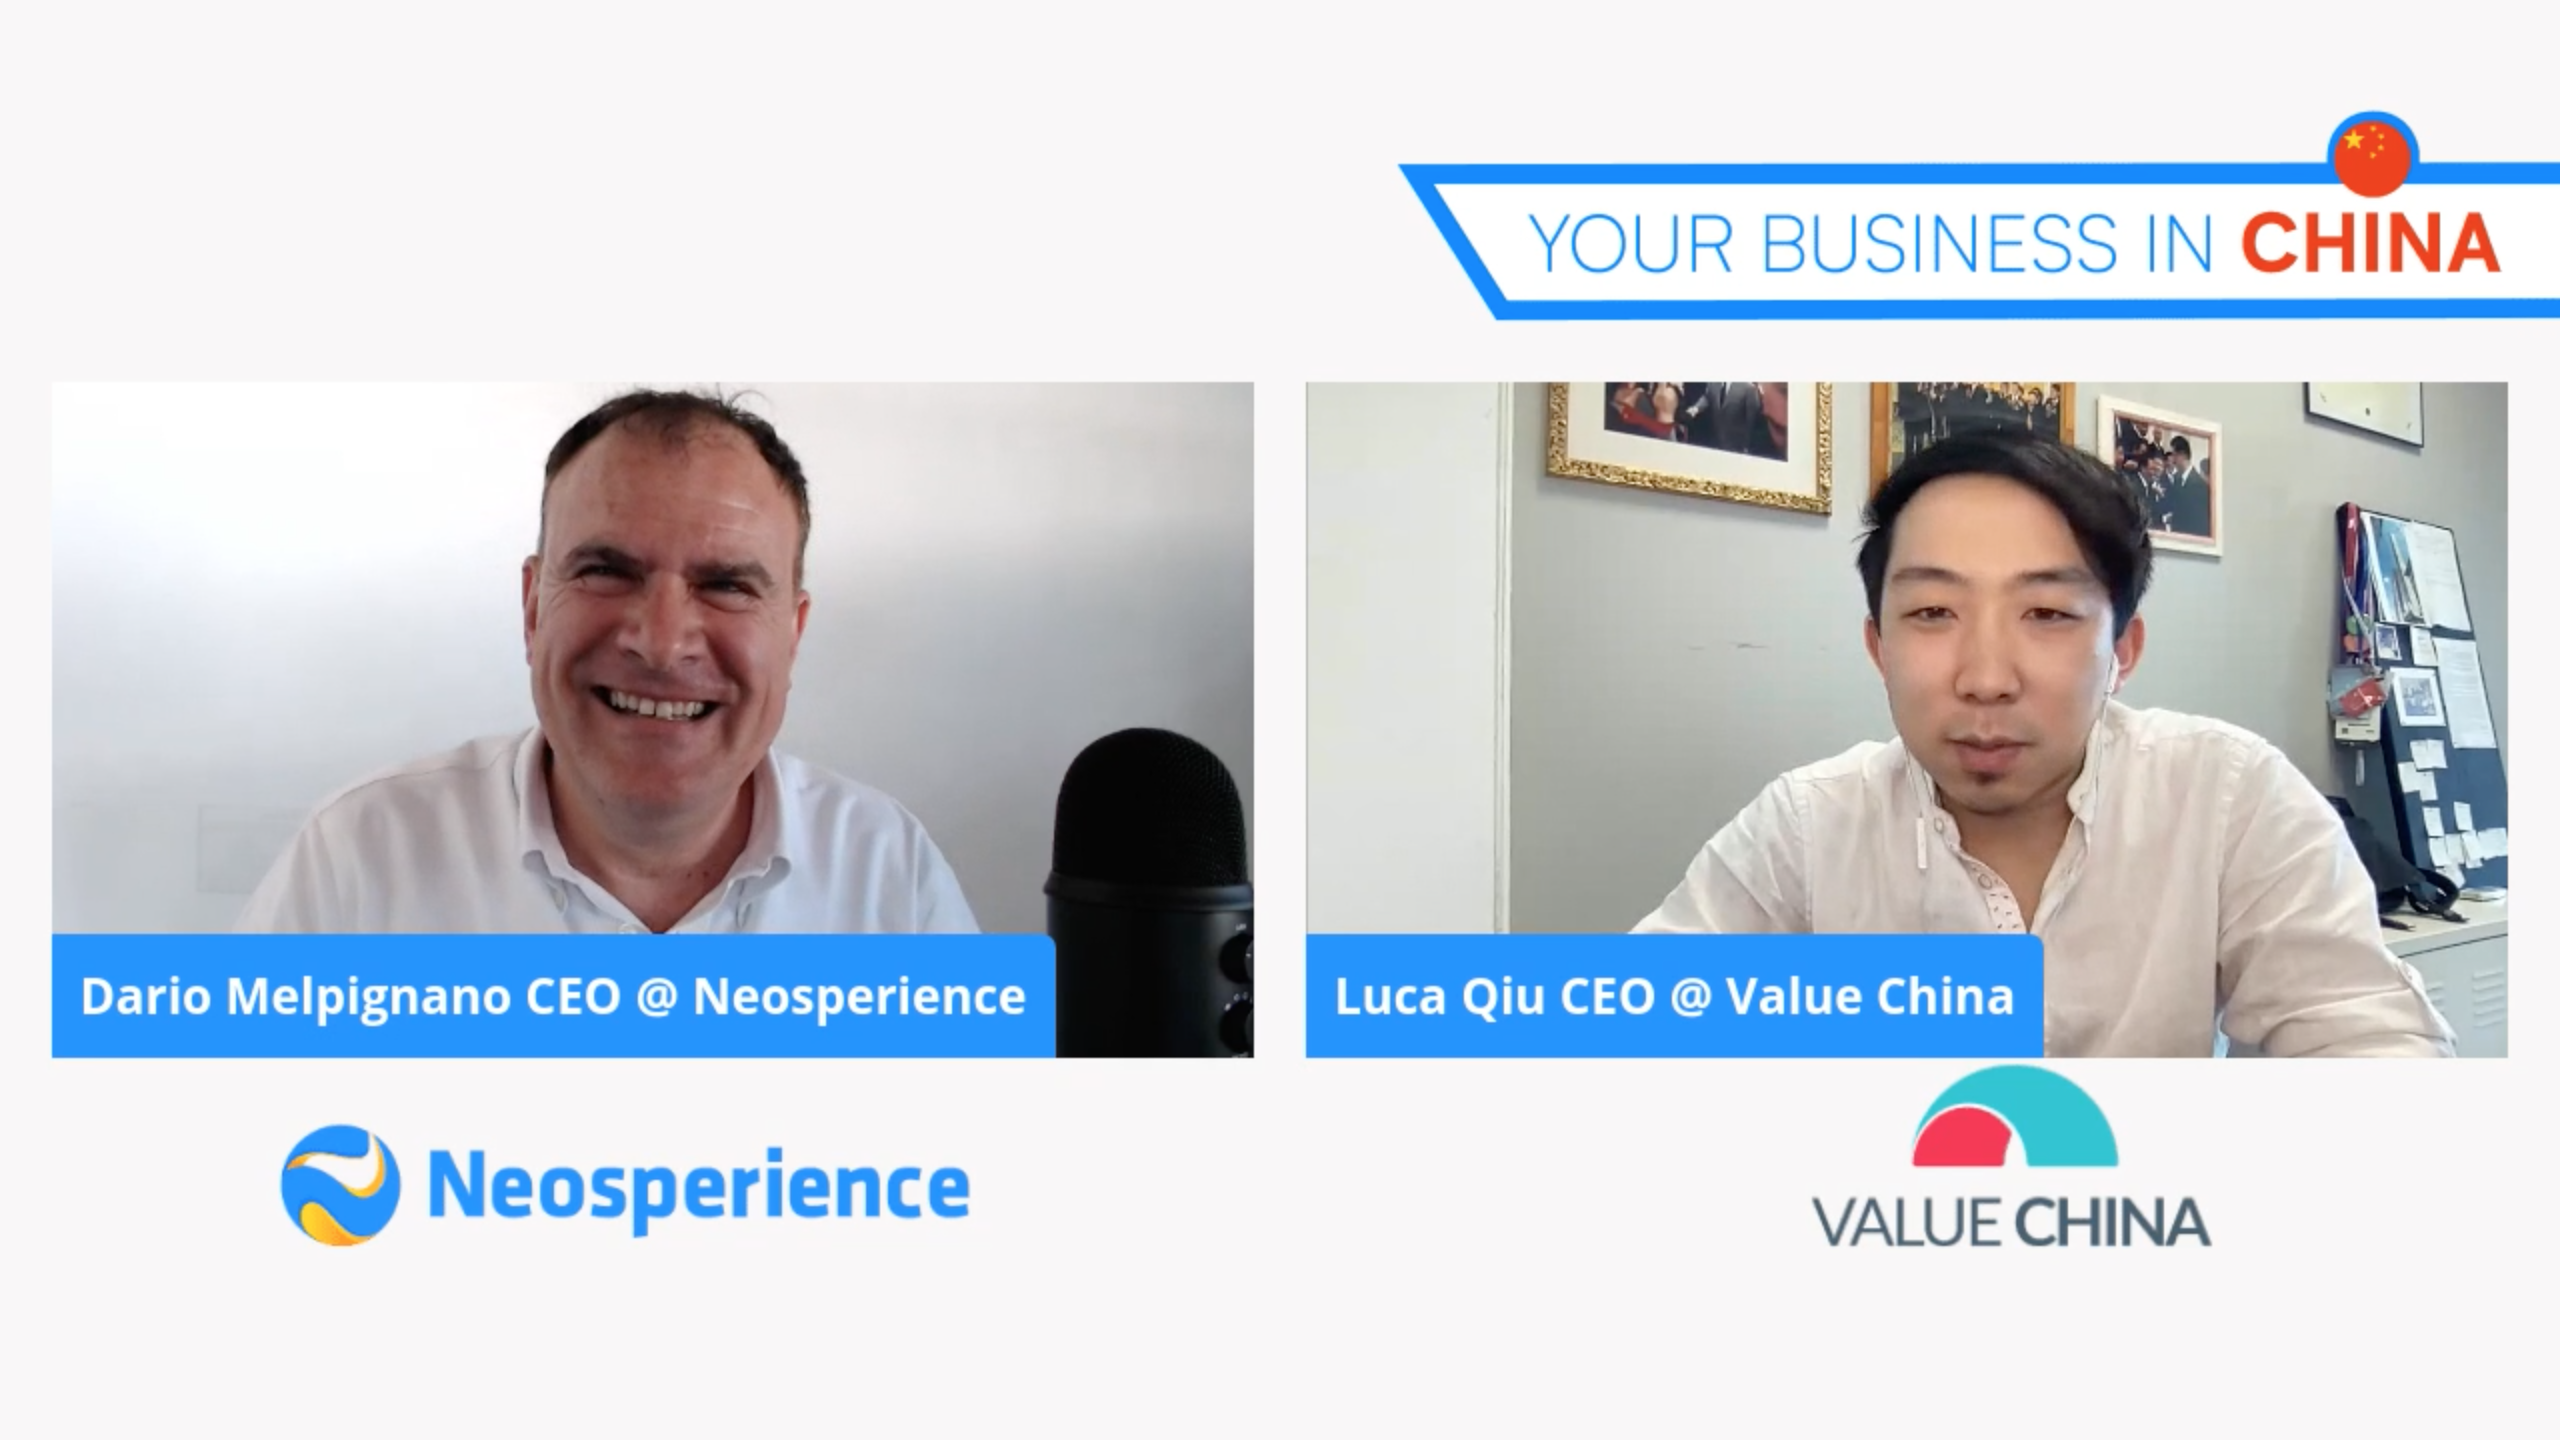 Your Business in China